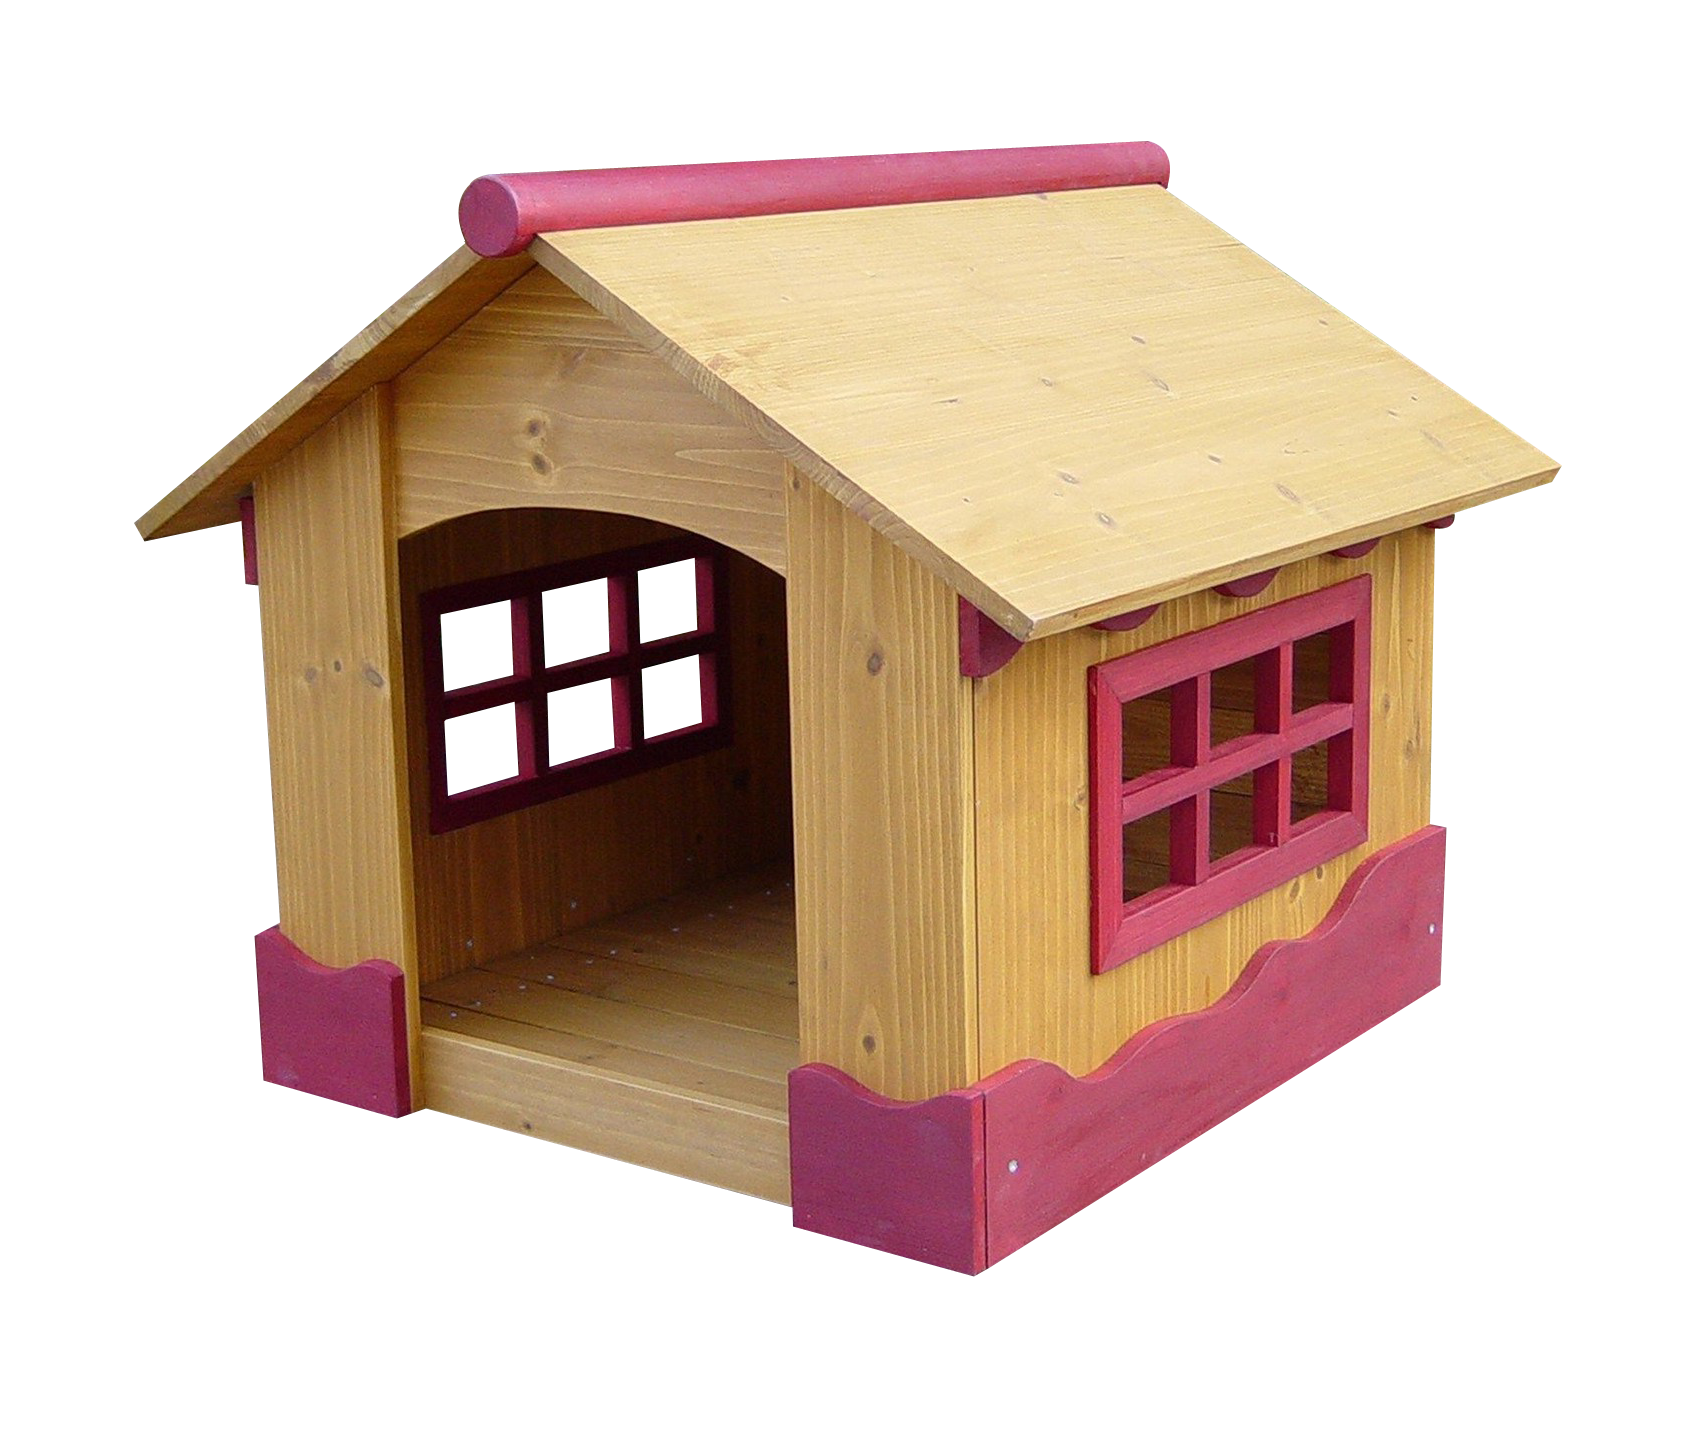 Dog Pet House PNG Image